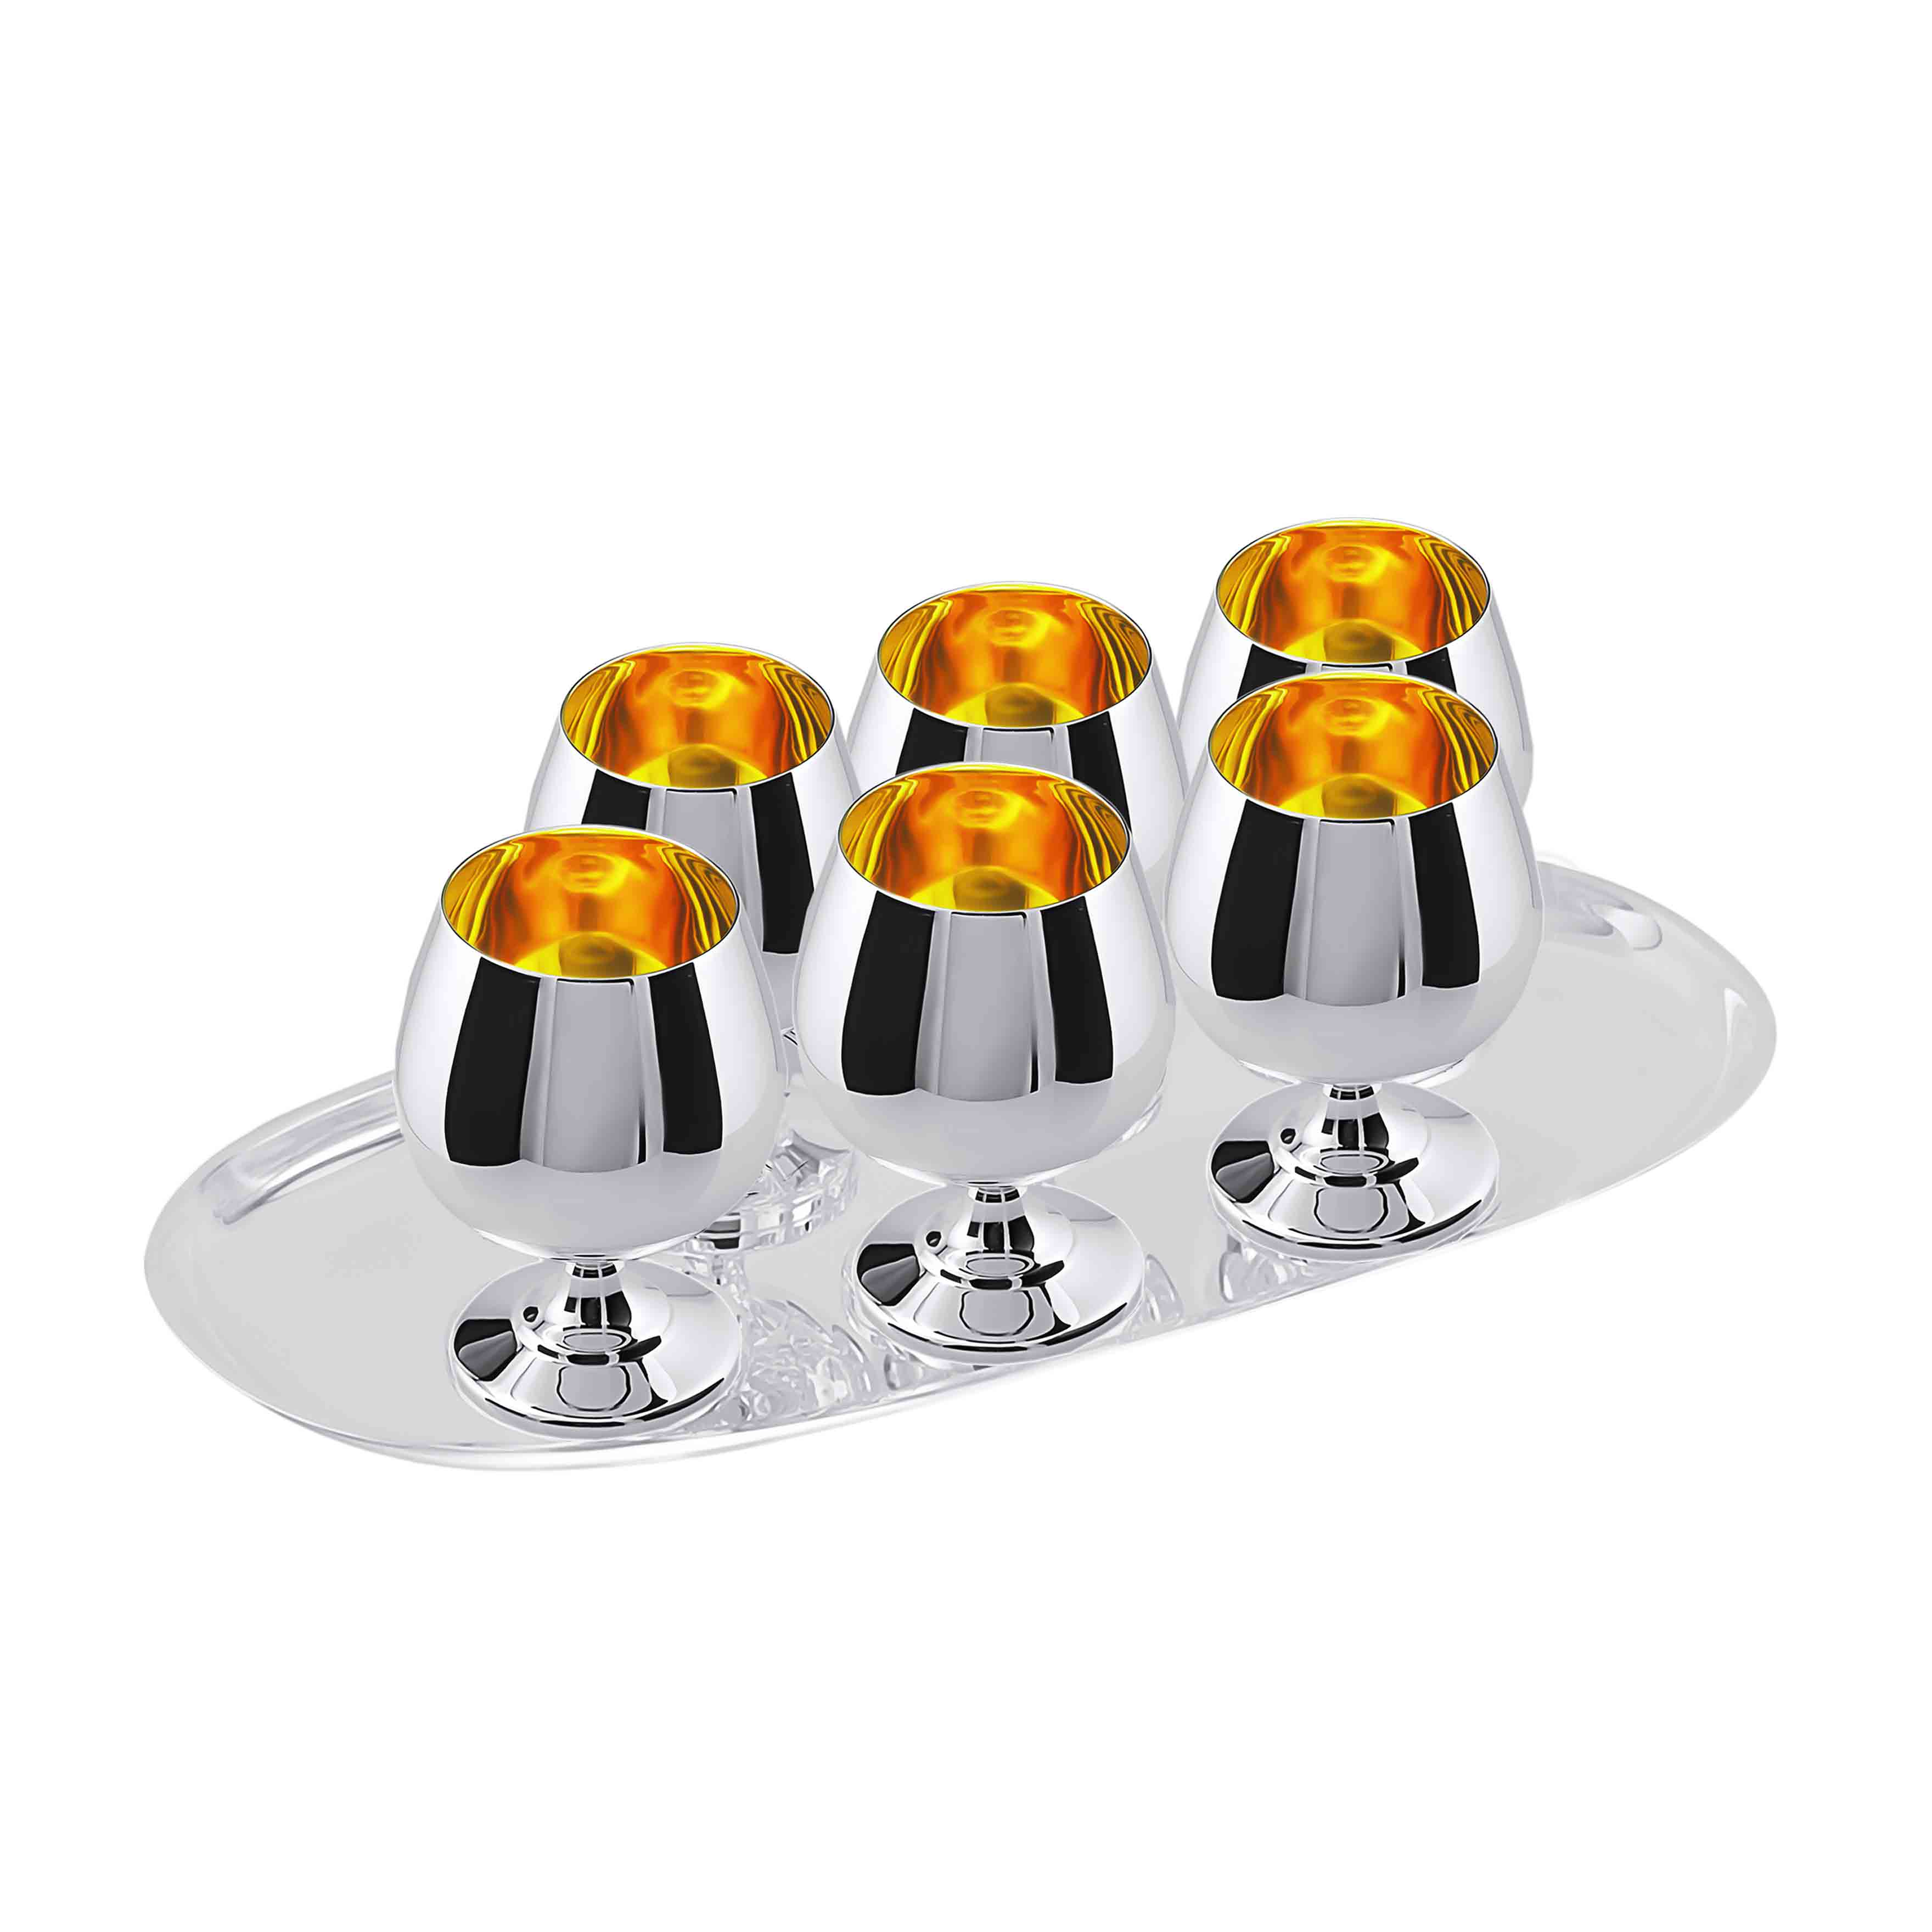 Cognac Silver Set for 6: 50ml Snifters on Tray